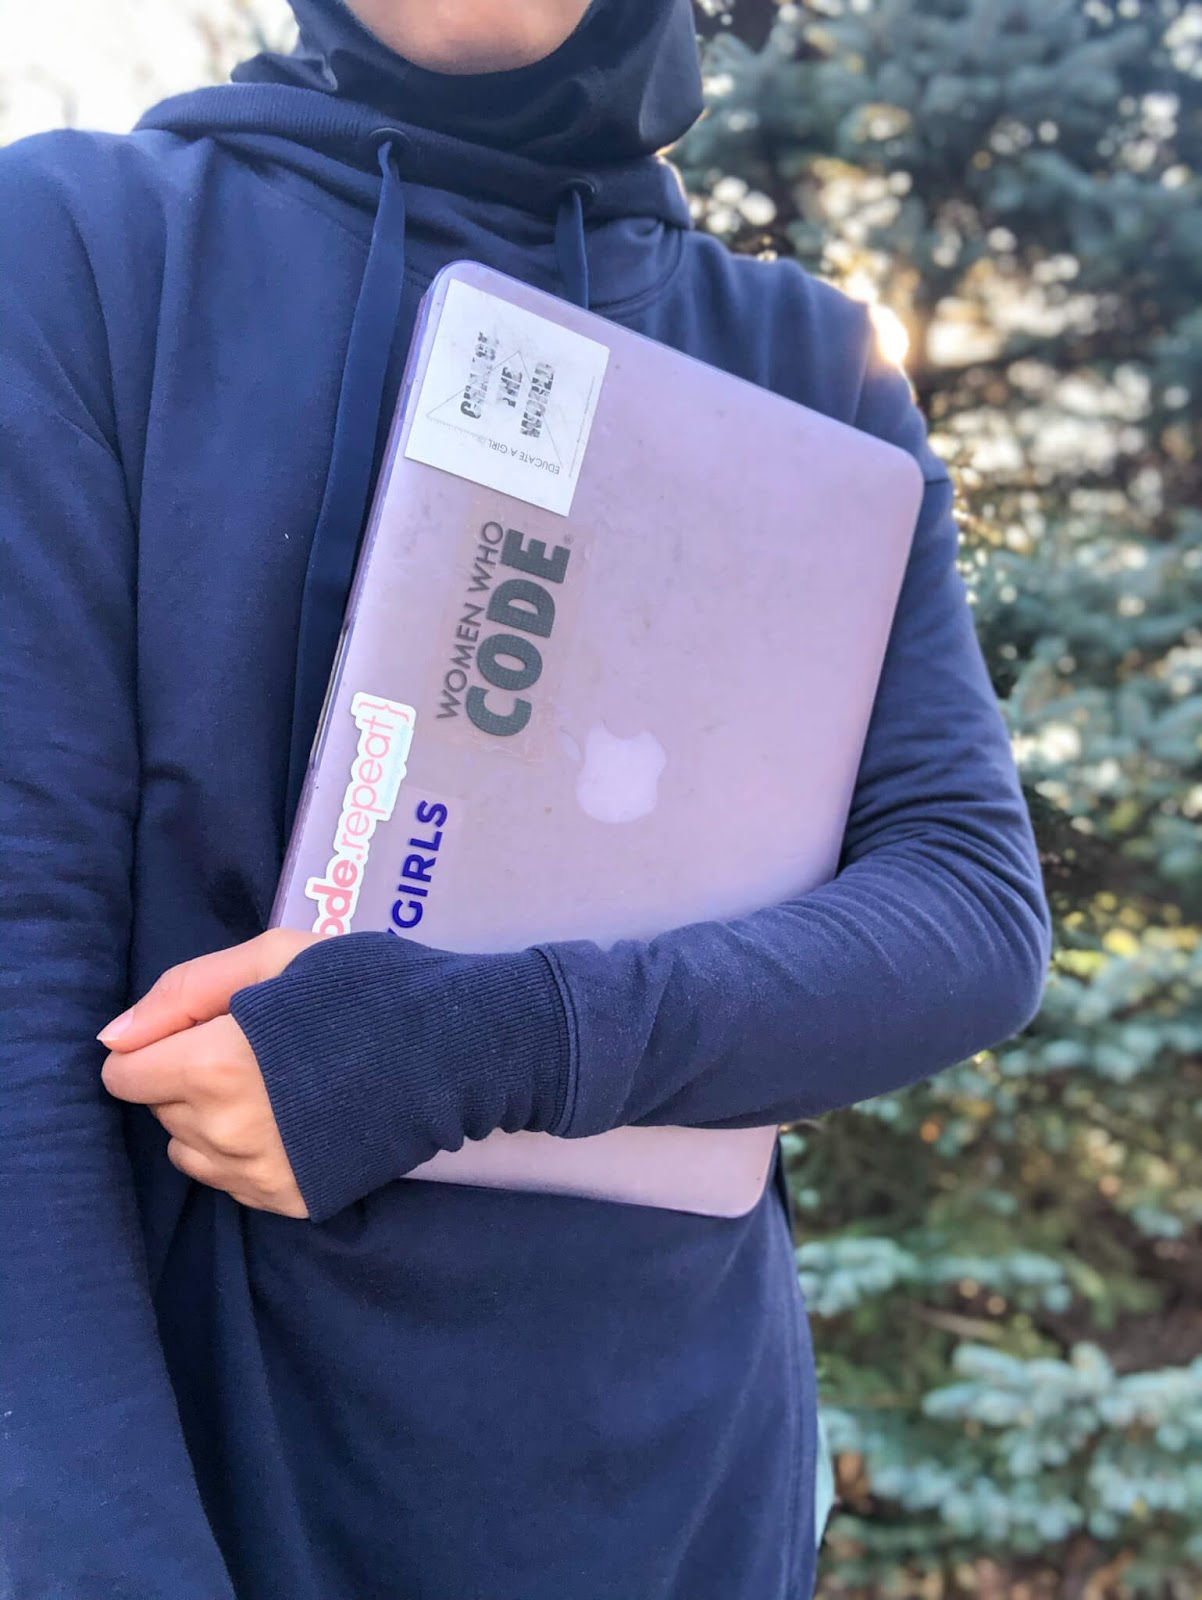 sahara holding purple colored laptop with stickers 'women who code', 'brunch.code.repeat', 'built by girls', and 'educate a girl change the world'